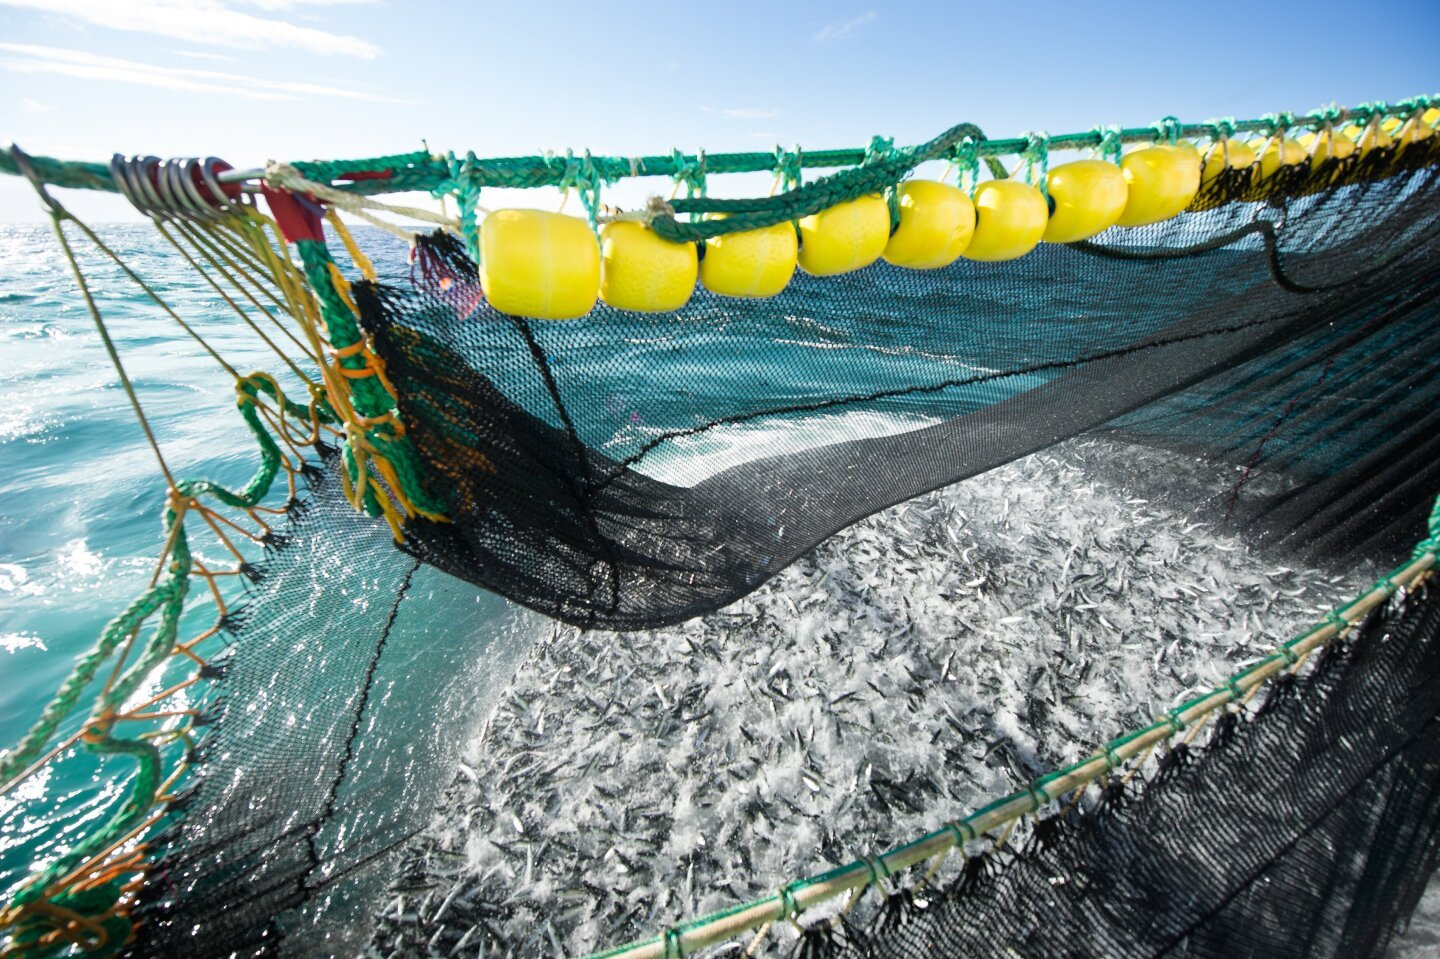 Irish Minister for the Marine has called on the EU to reject Norway's increase in mackerel quota